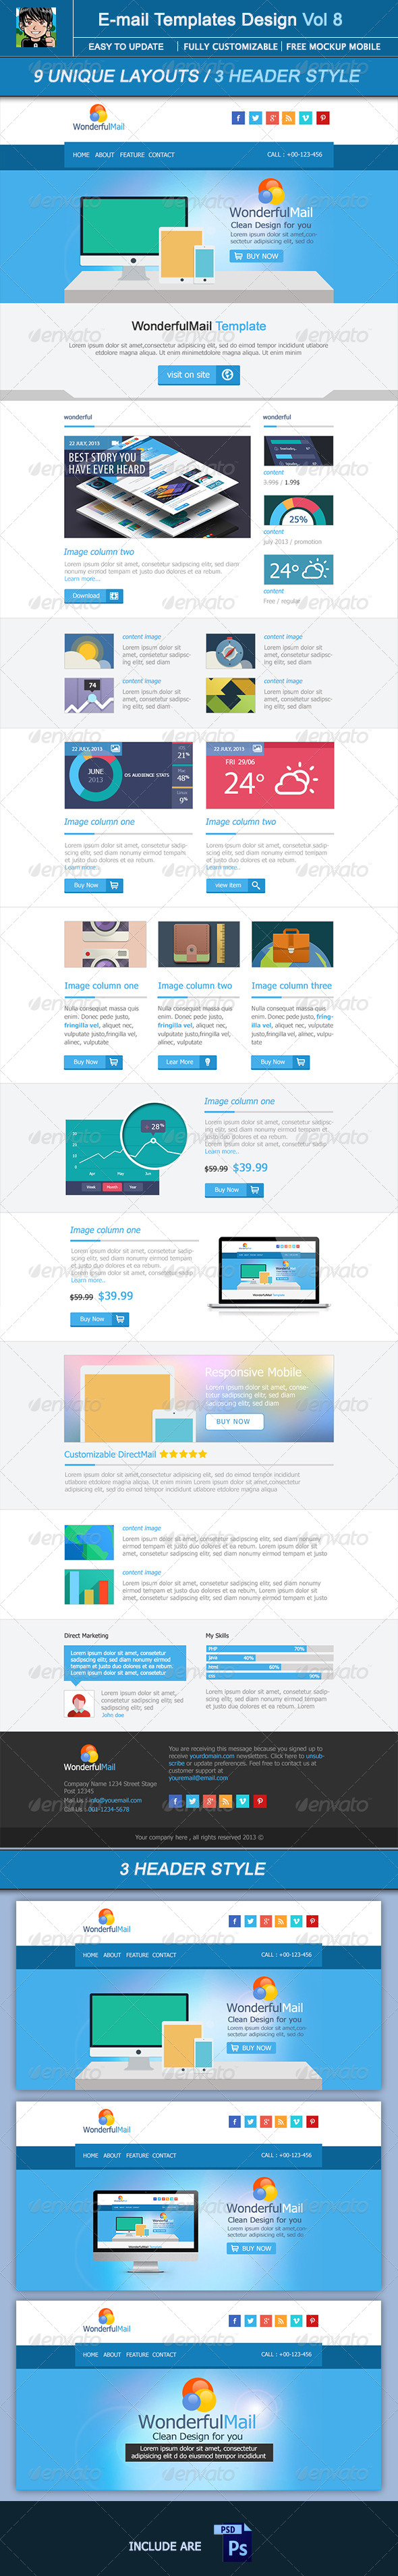 WonderfulMail Email Template Design Vol 8 - E-newsletters Web Elements